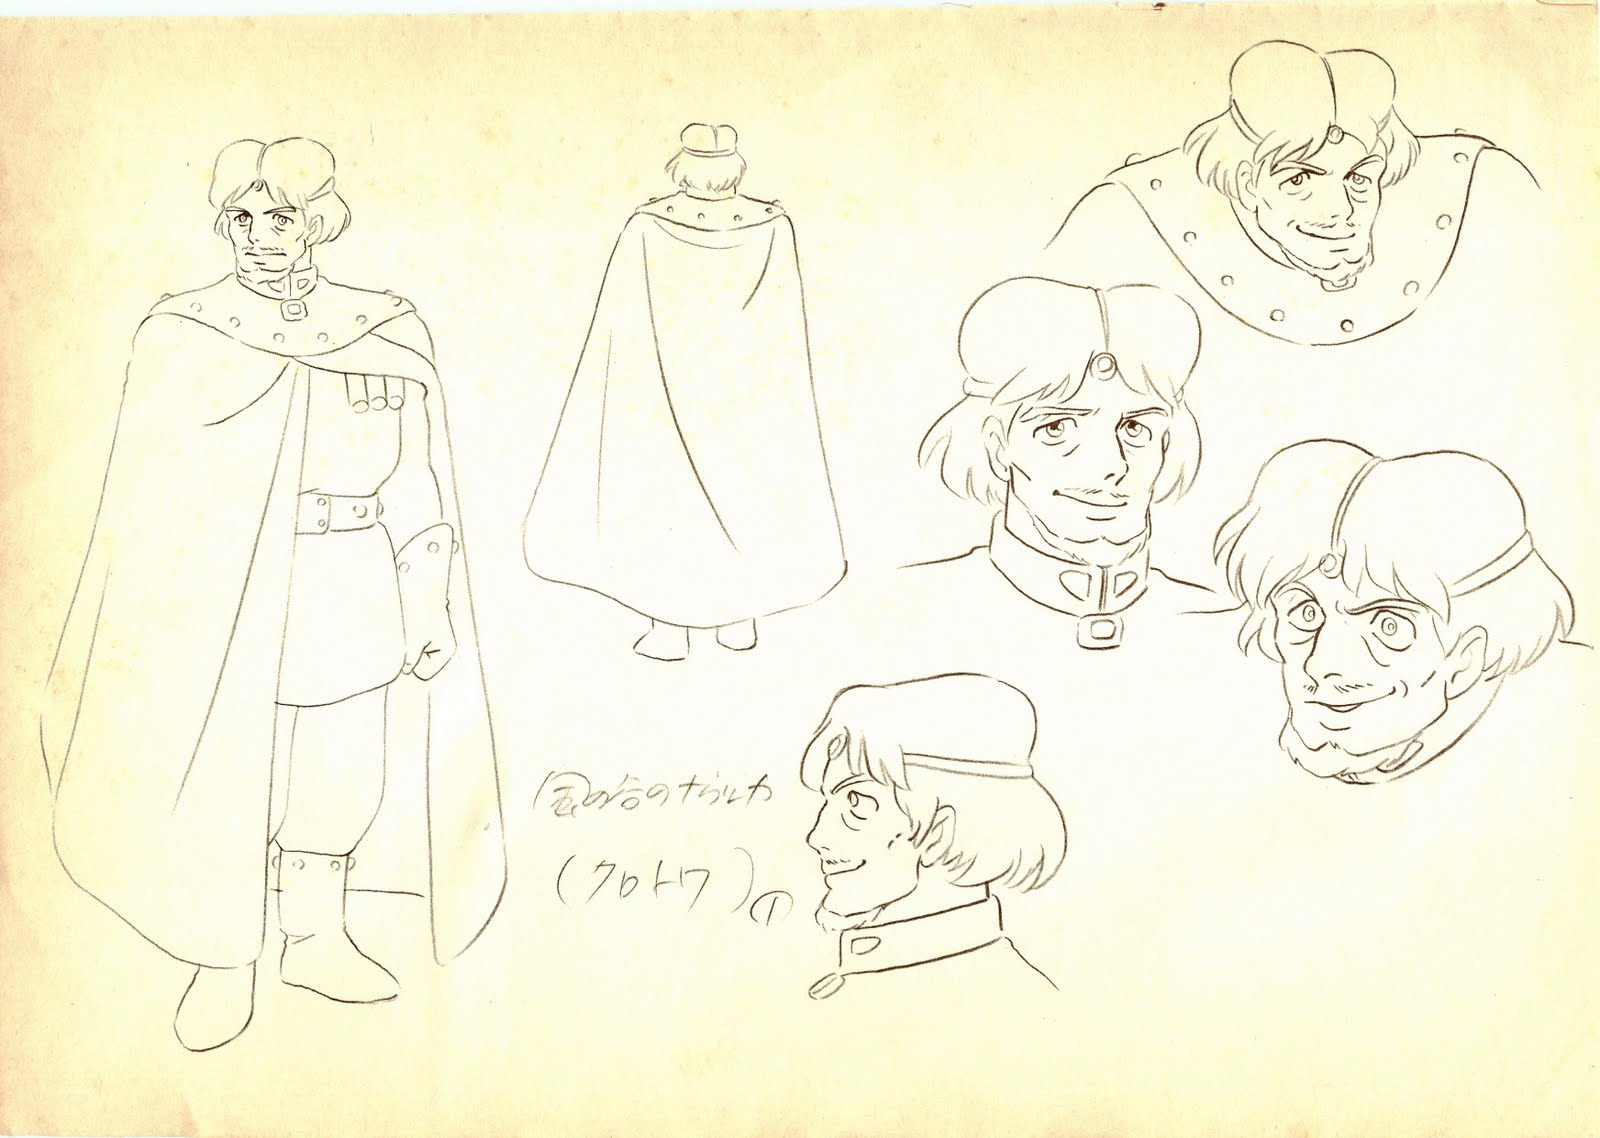 nausicaa_of_the_valley_of_the_wind_concept_art_character_10.jpg